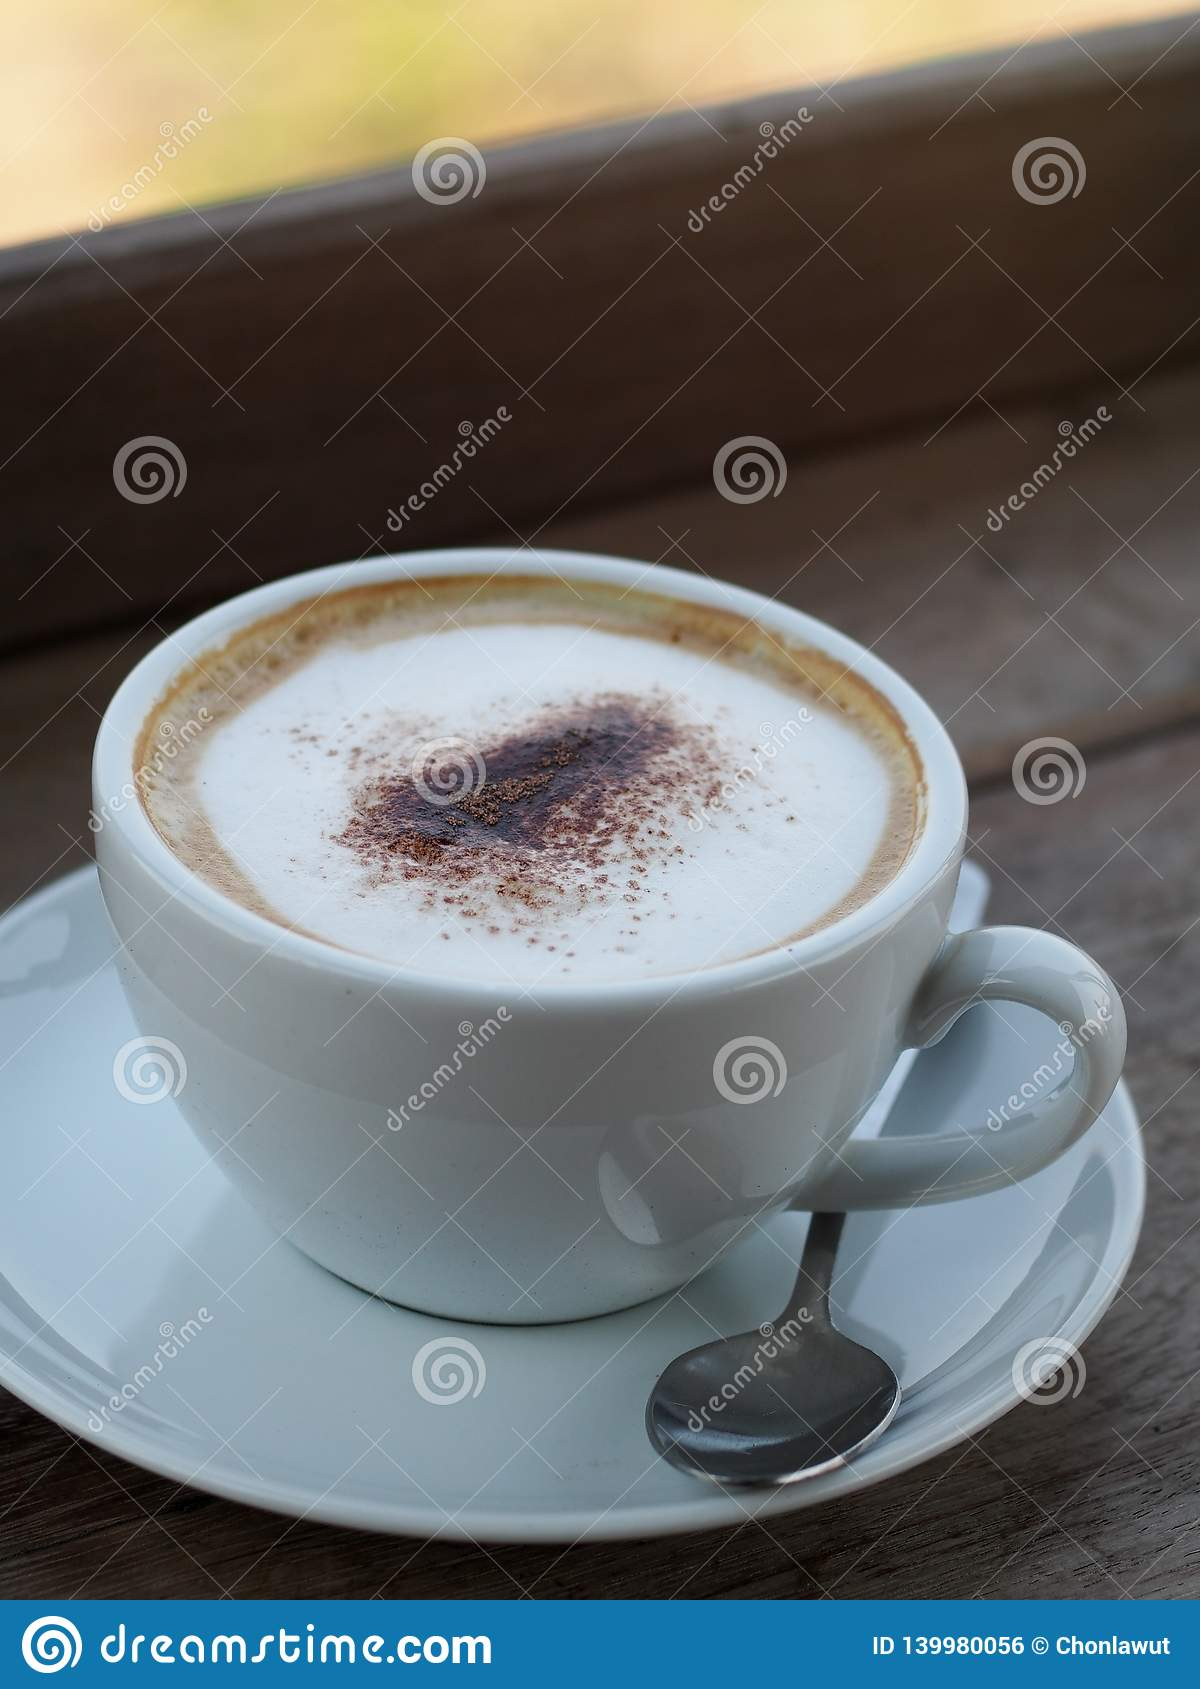 Hot cappuccino with full fine bubble cream little cacao powder served in white ceramic coffee cup